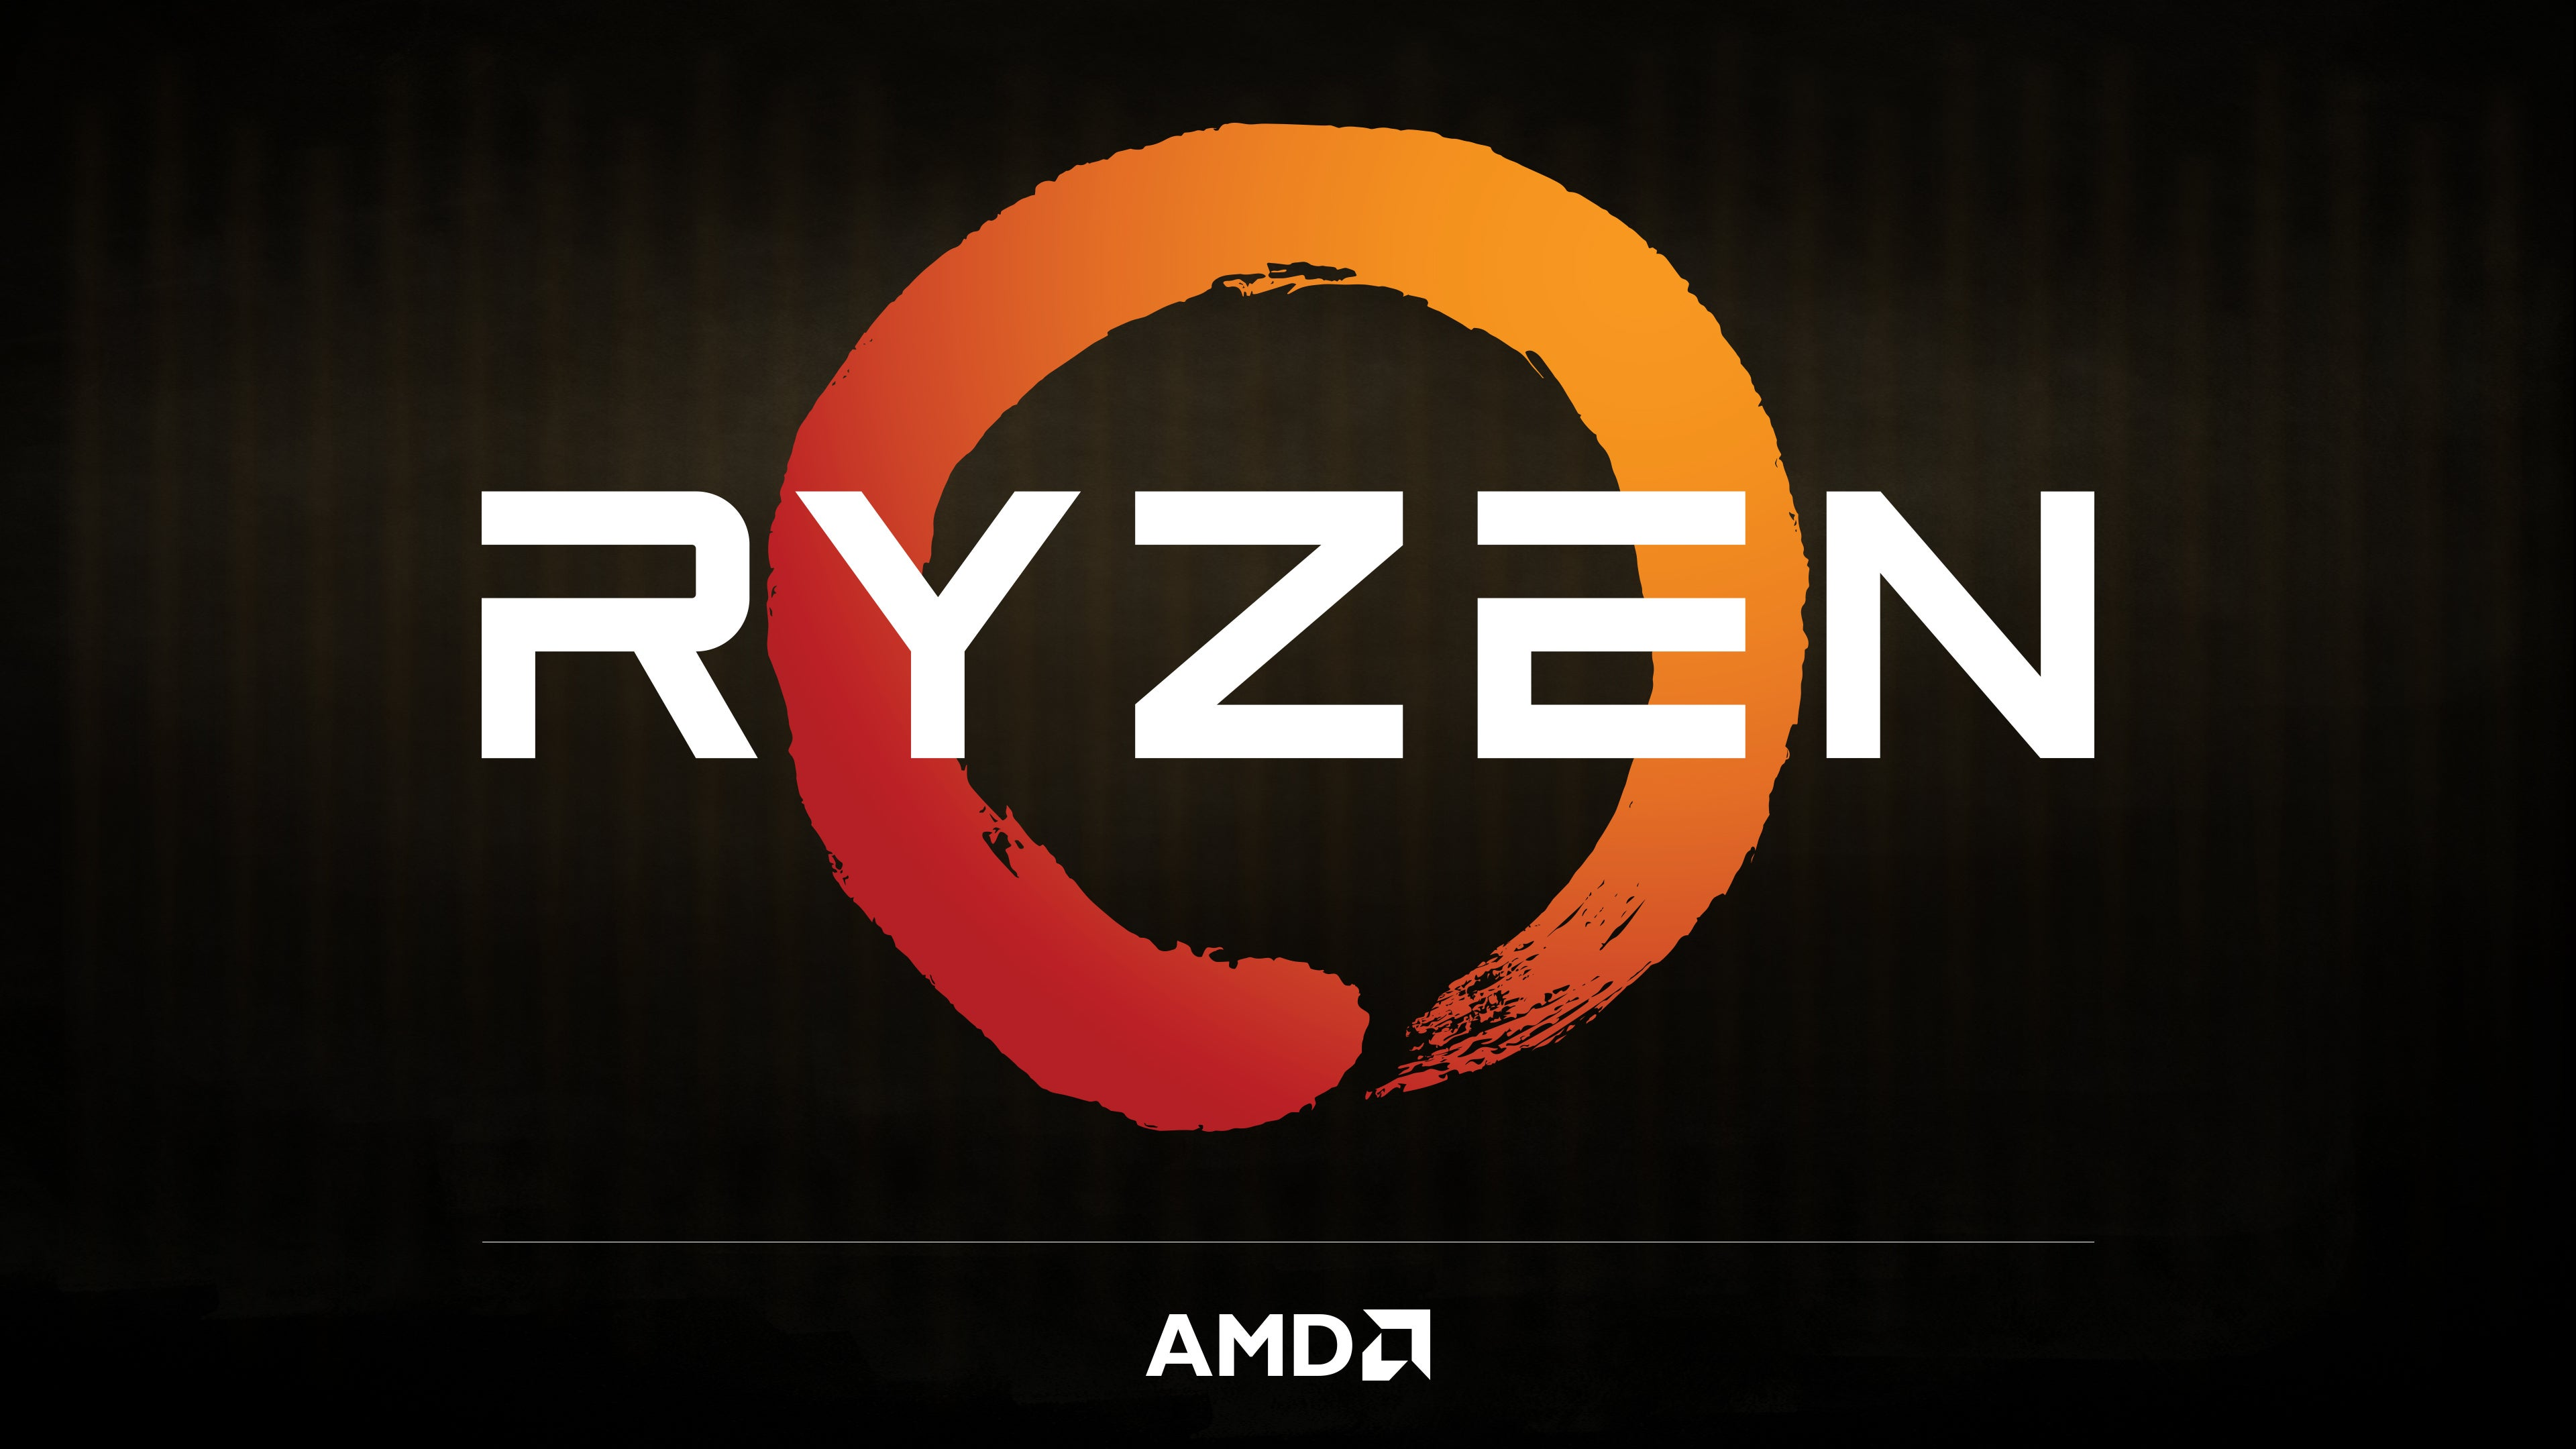 Amd S Ryzen The Good And The Bad The Motley Fool